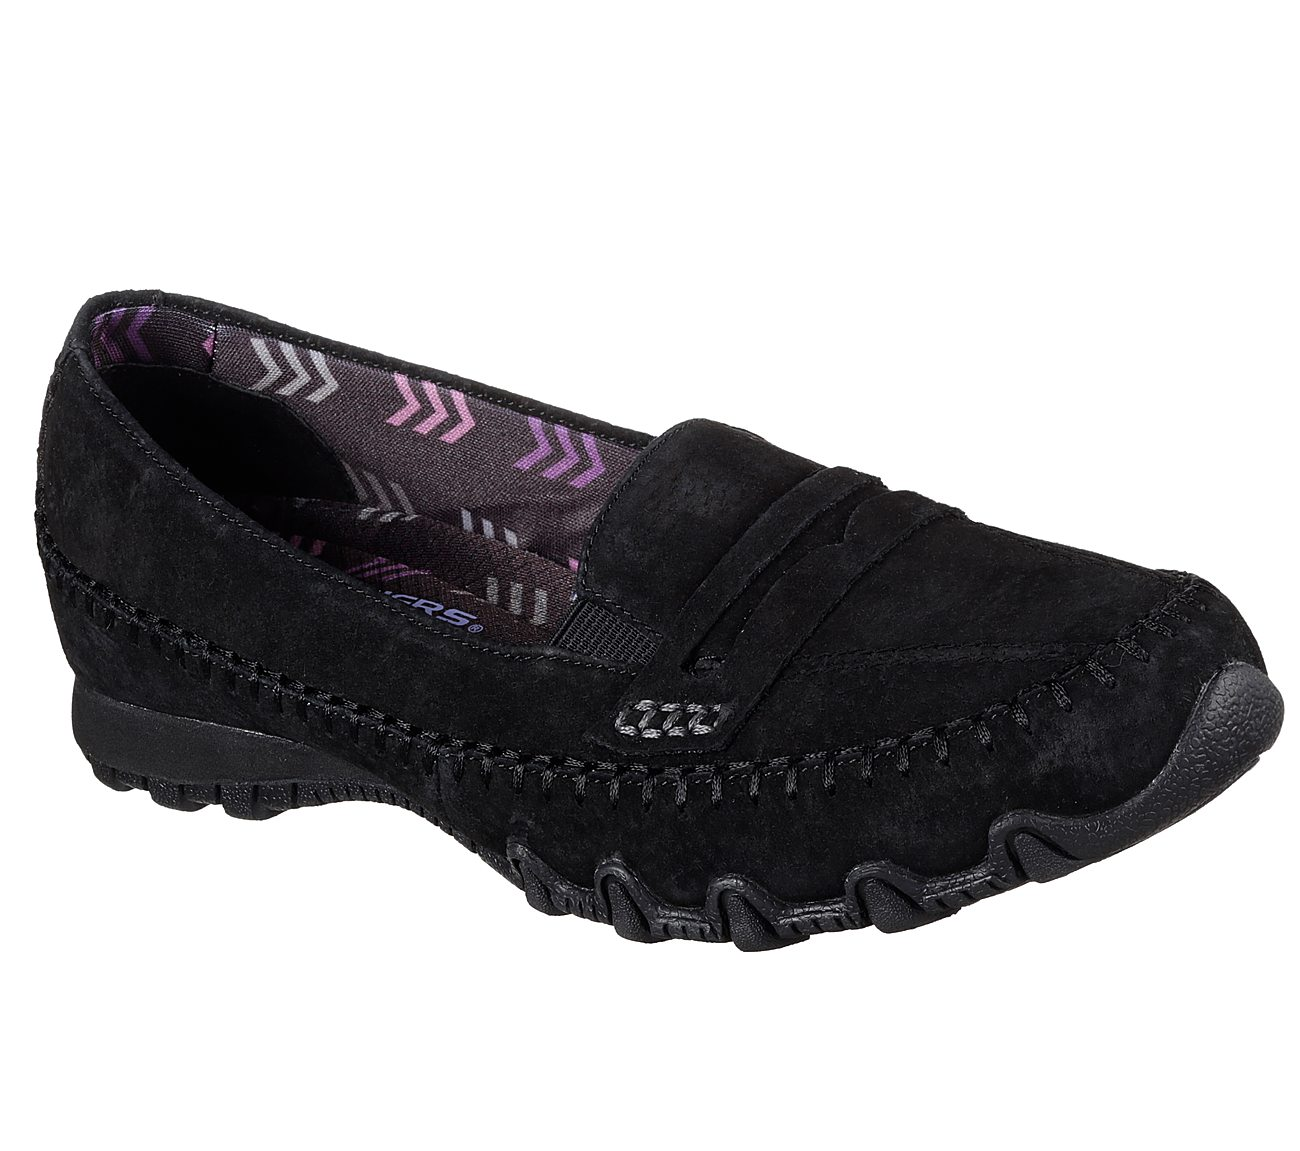 757835fa736 SKECHERS Modern Comfort™. Classic loafer style meets amazing comfort in the SKECHERS  Relaxed Fit®  Bikers - Penny Lane ...